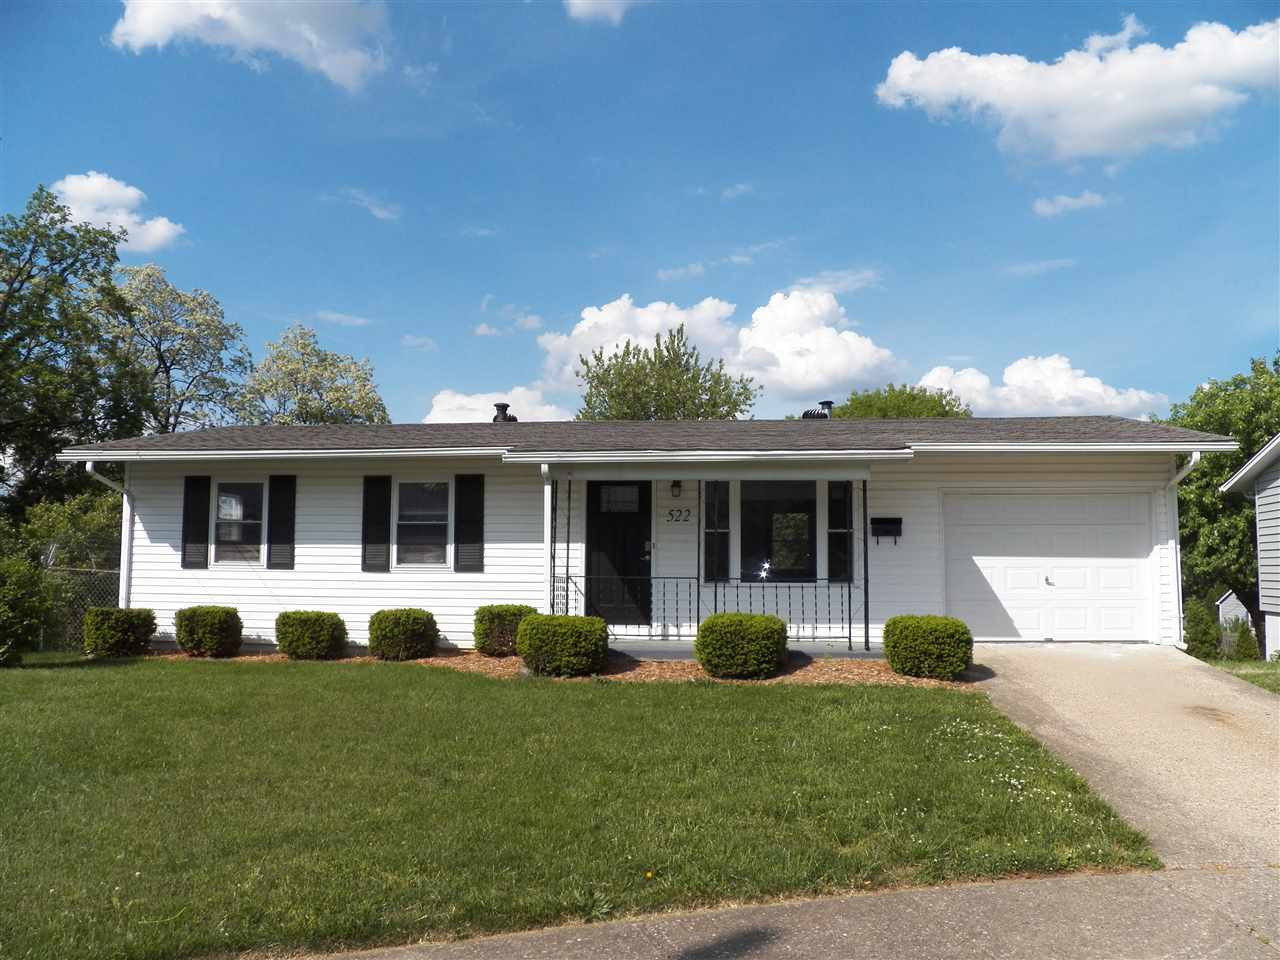 Photo 1 for 522 Kirby Ct Erlanger, KY 41018